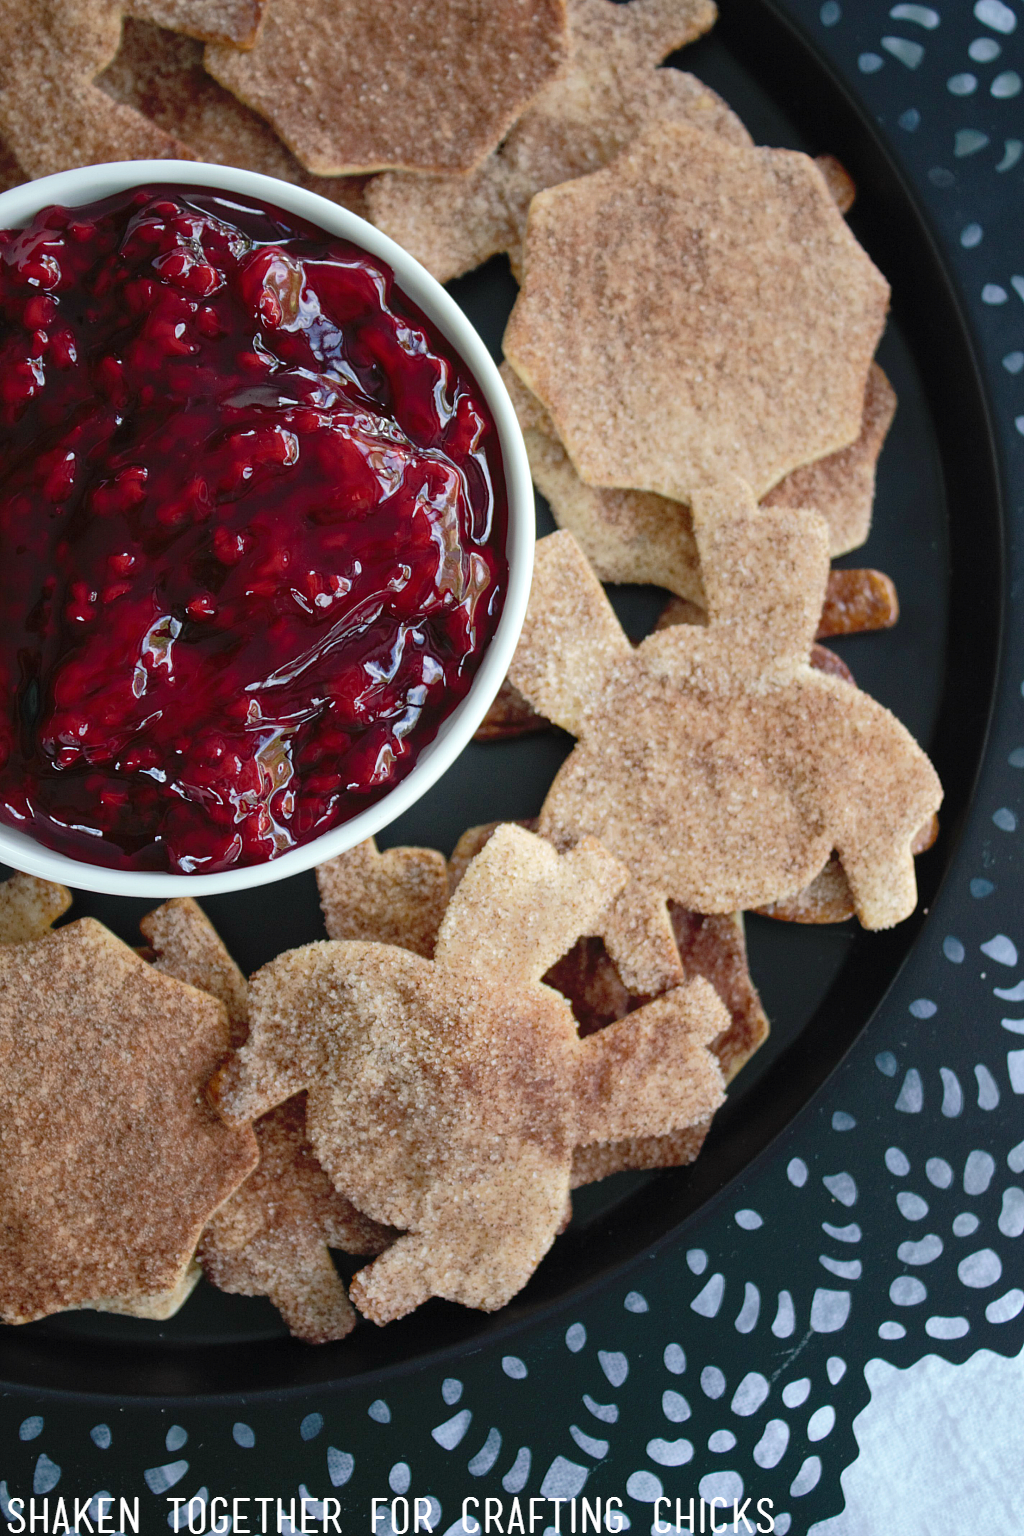 Cinnamon Sugar Spider Chips are perfect to dip in tangy red raspberry 'guts' (raspberry pie filling)!